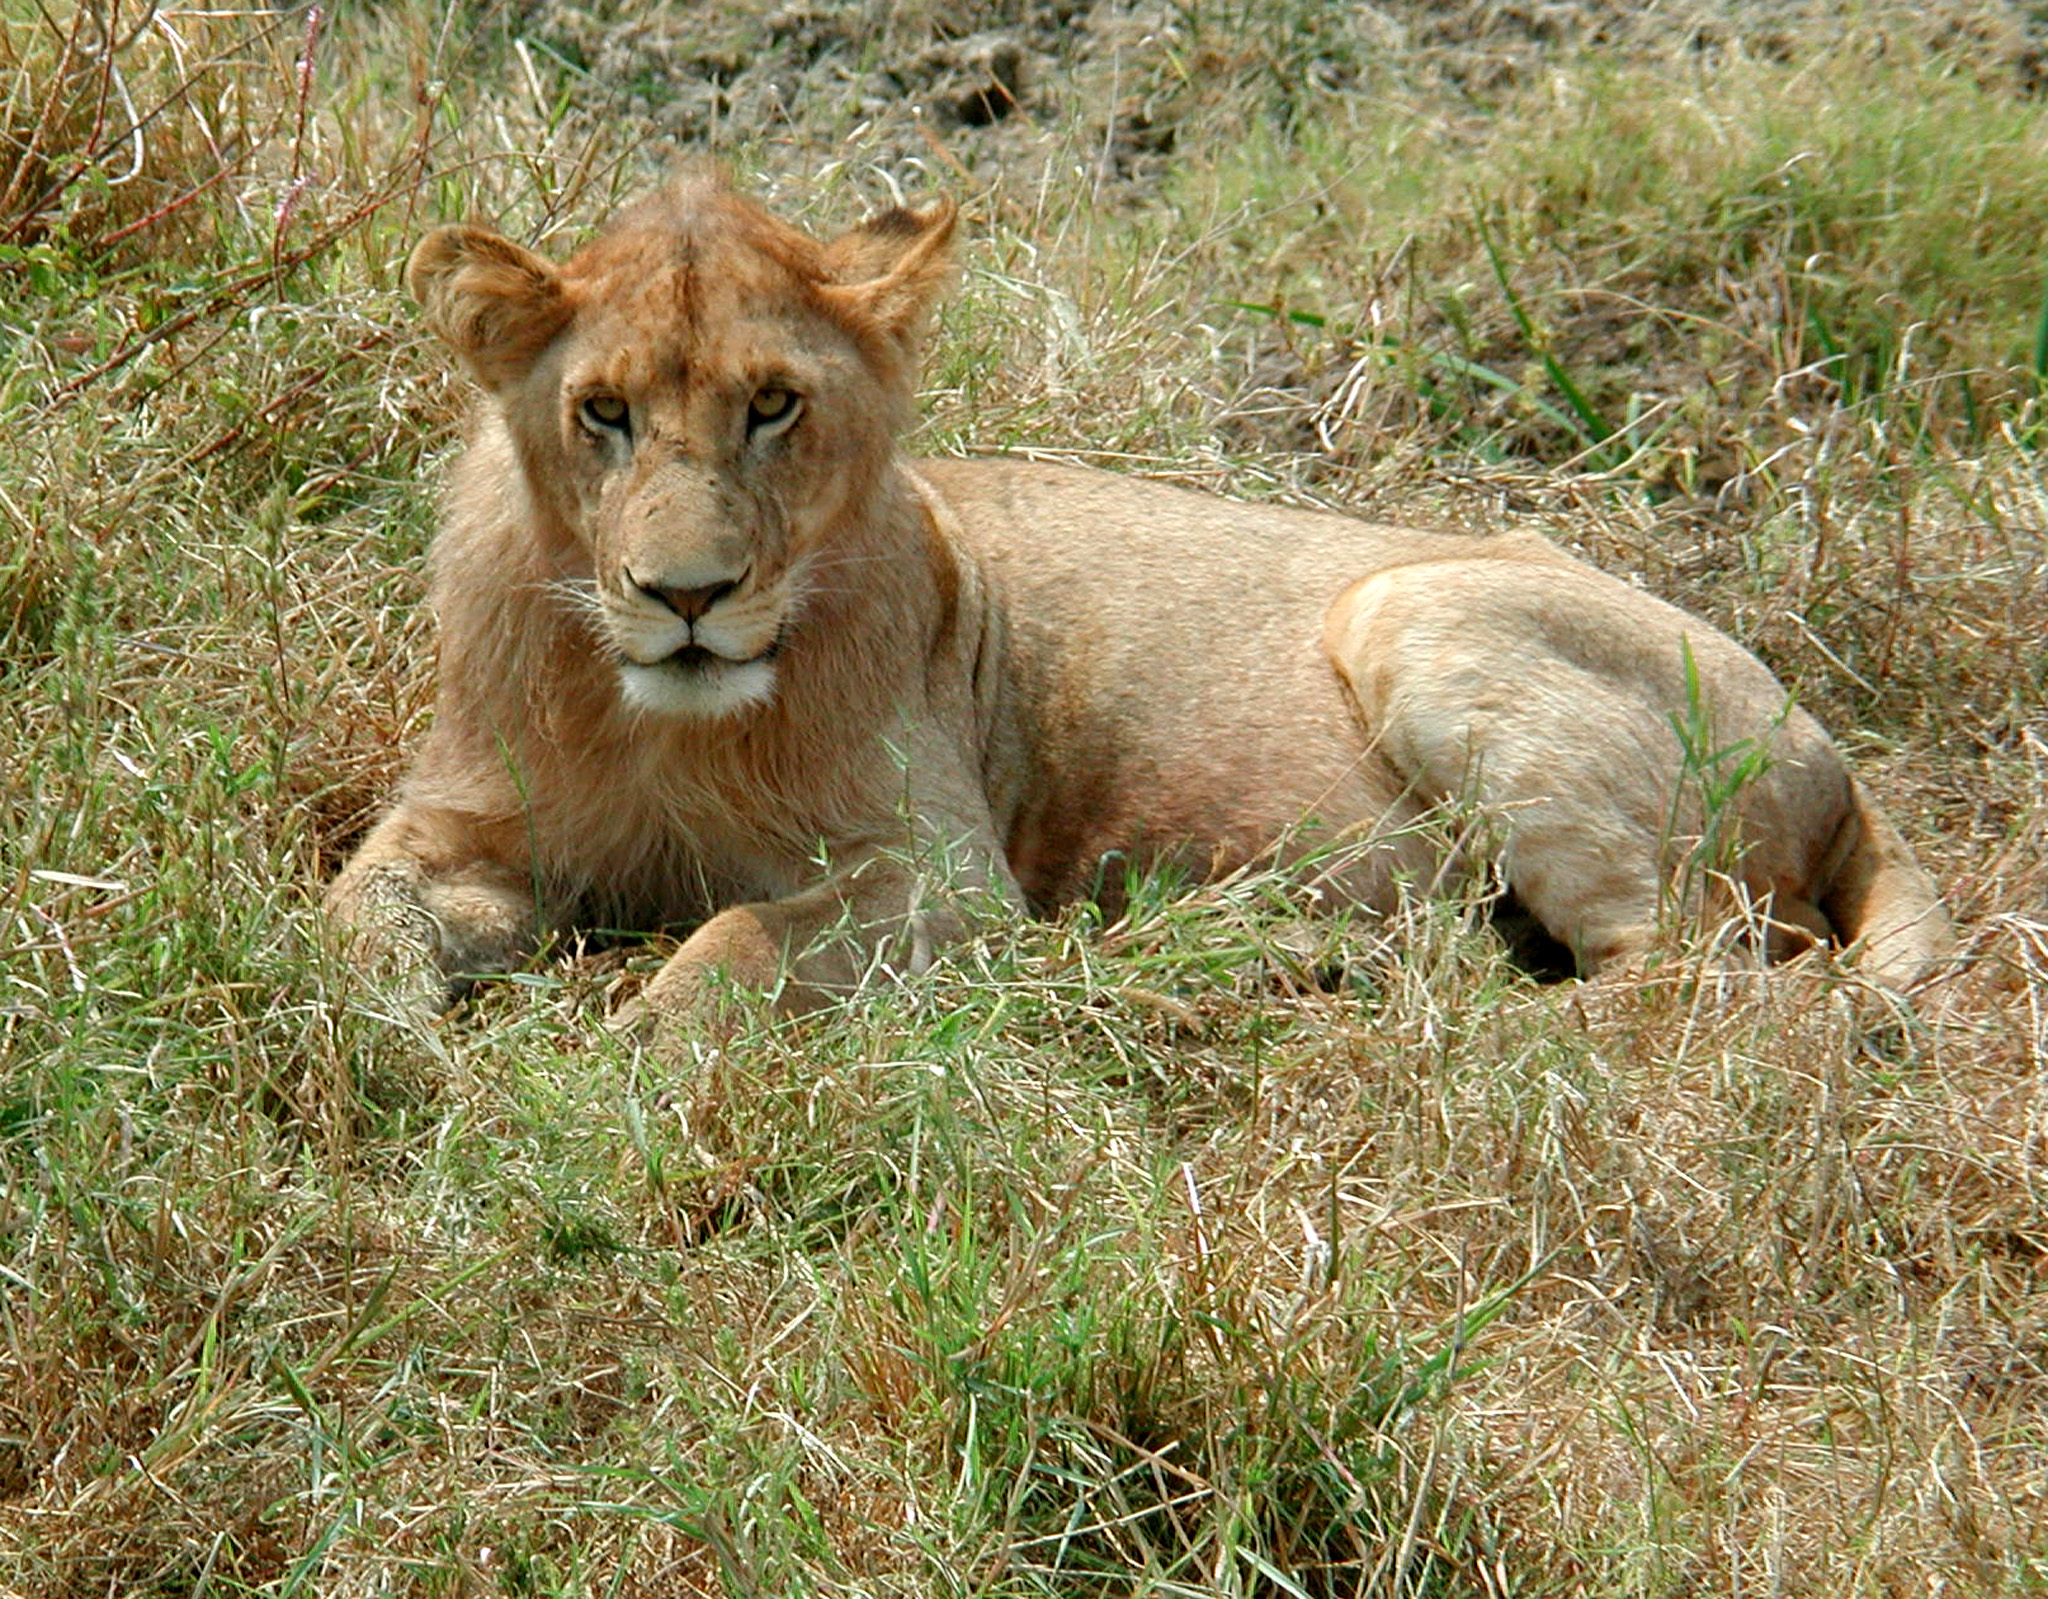 http://upload.wikimedia.org/wikipedia/commons/8/82/Young_lion_of_the_Serengeti.JPG